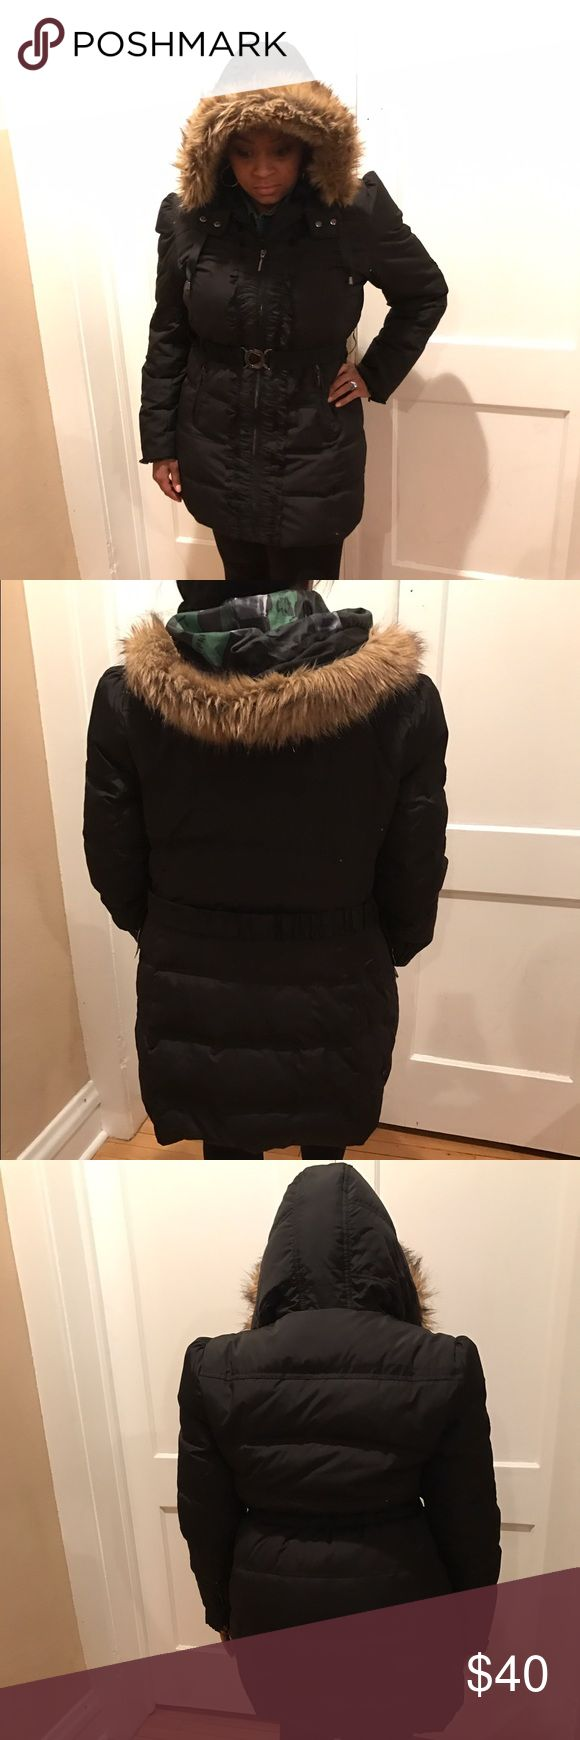 Womens puffer coat by Mac & Jac Black women's puffer coat size Large. Zip up front enhanced with ruffles. Attached hood with faux fur.  Very warm and in excellent condition. mac & jac Jackets & Coats Puffers